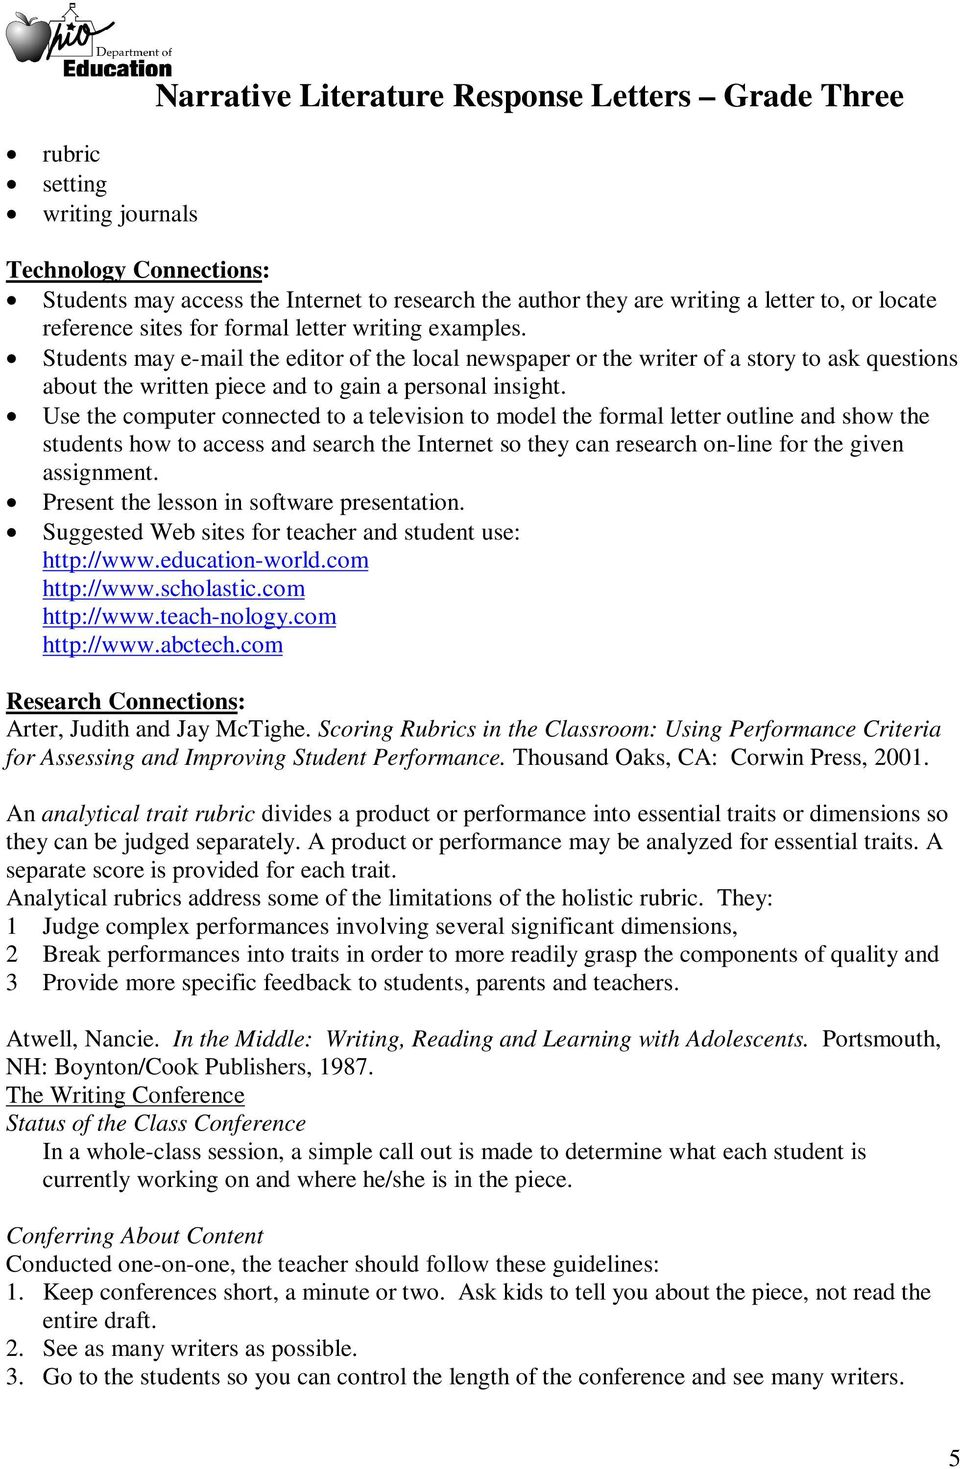 Narrative literature response letters grade three pdf students may e mail the editor of the local newspaper or the writer of a spiritdancerdesigns Choice Image